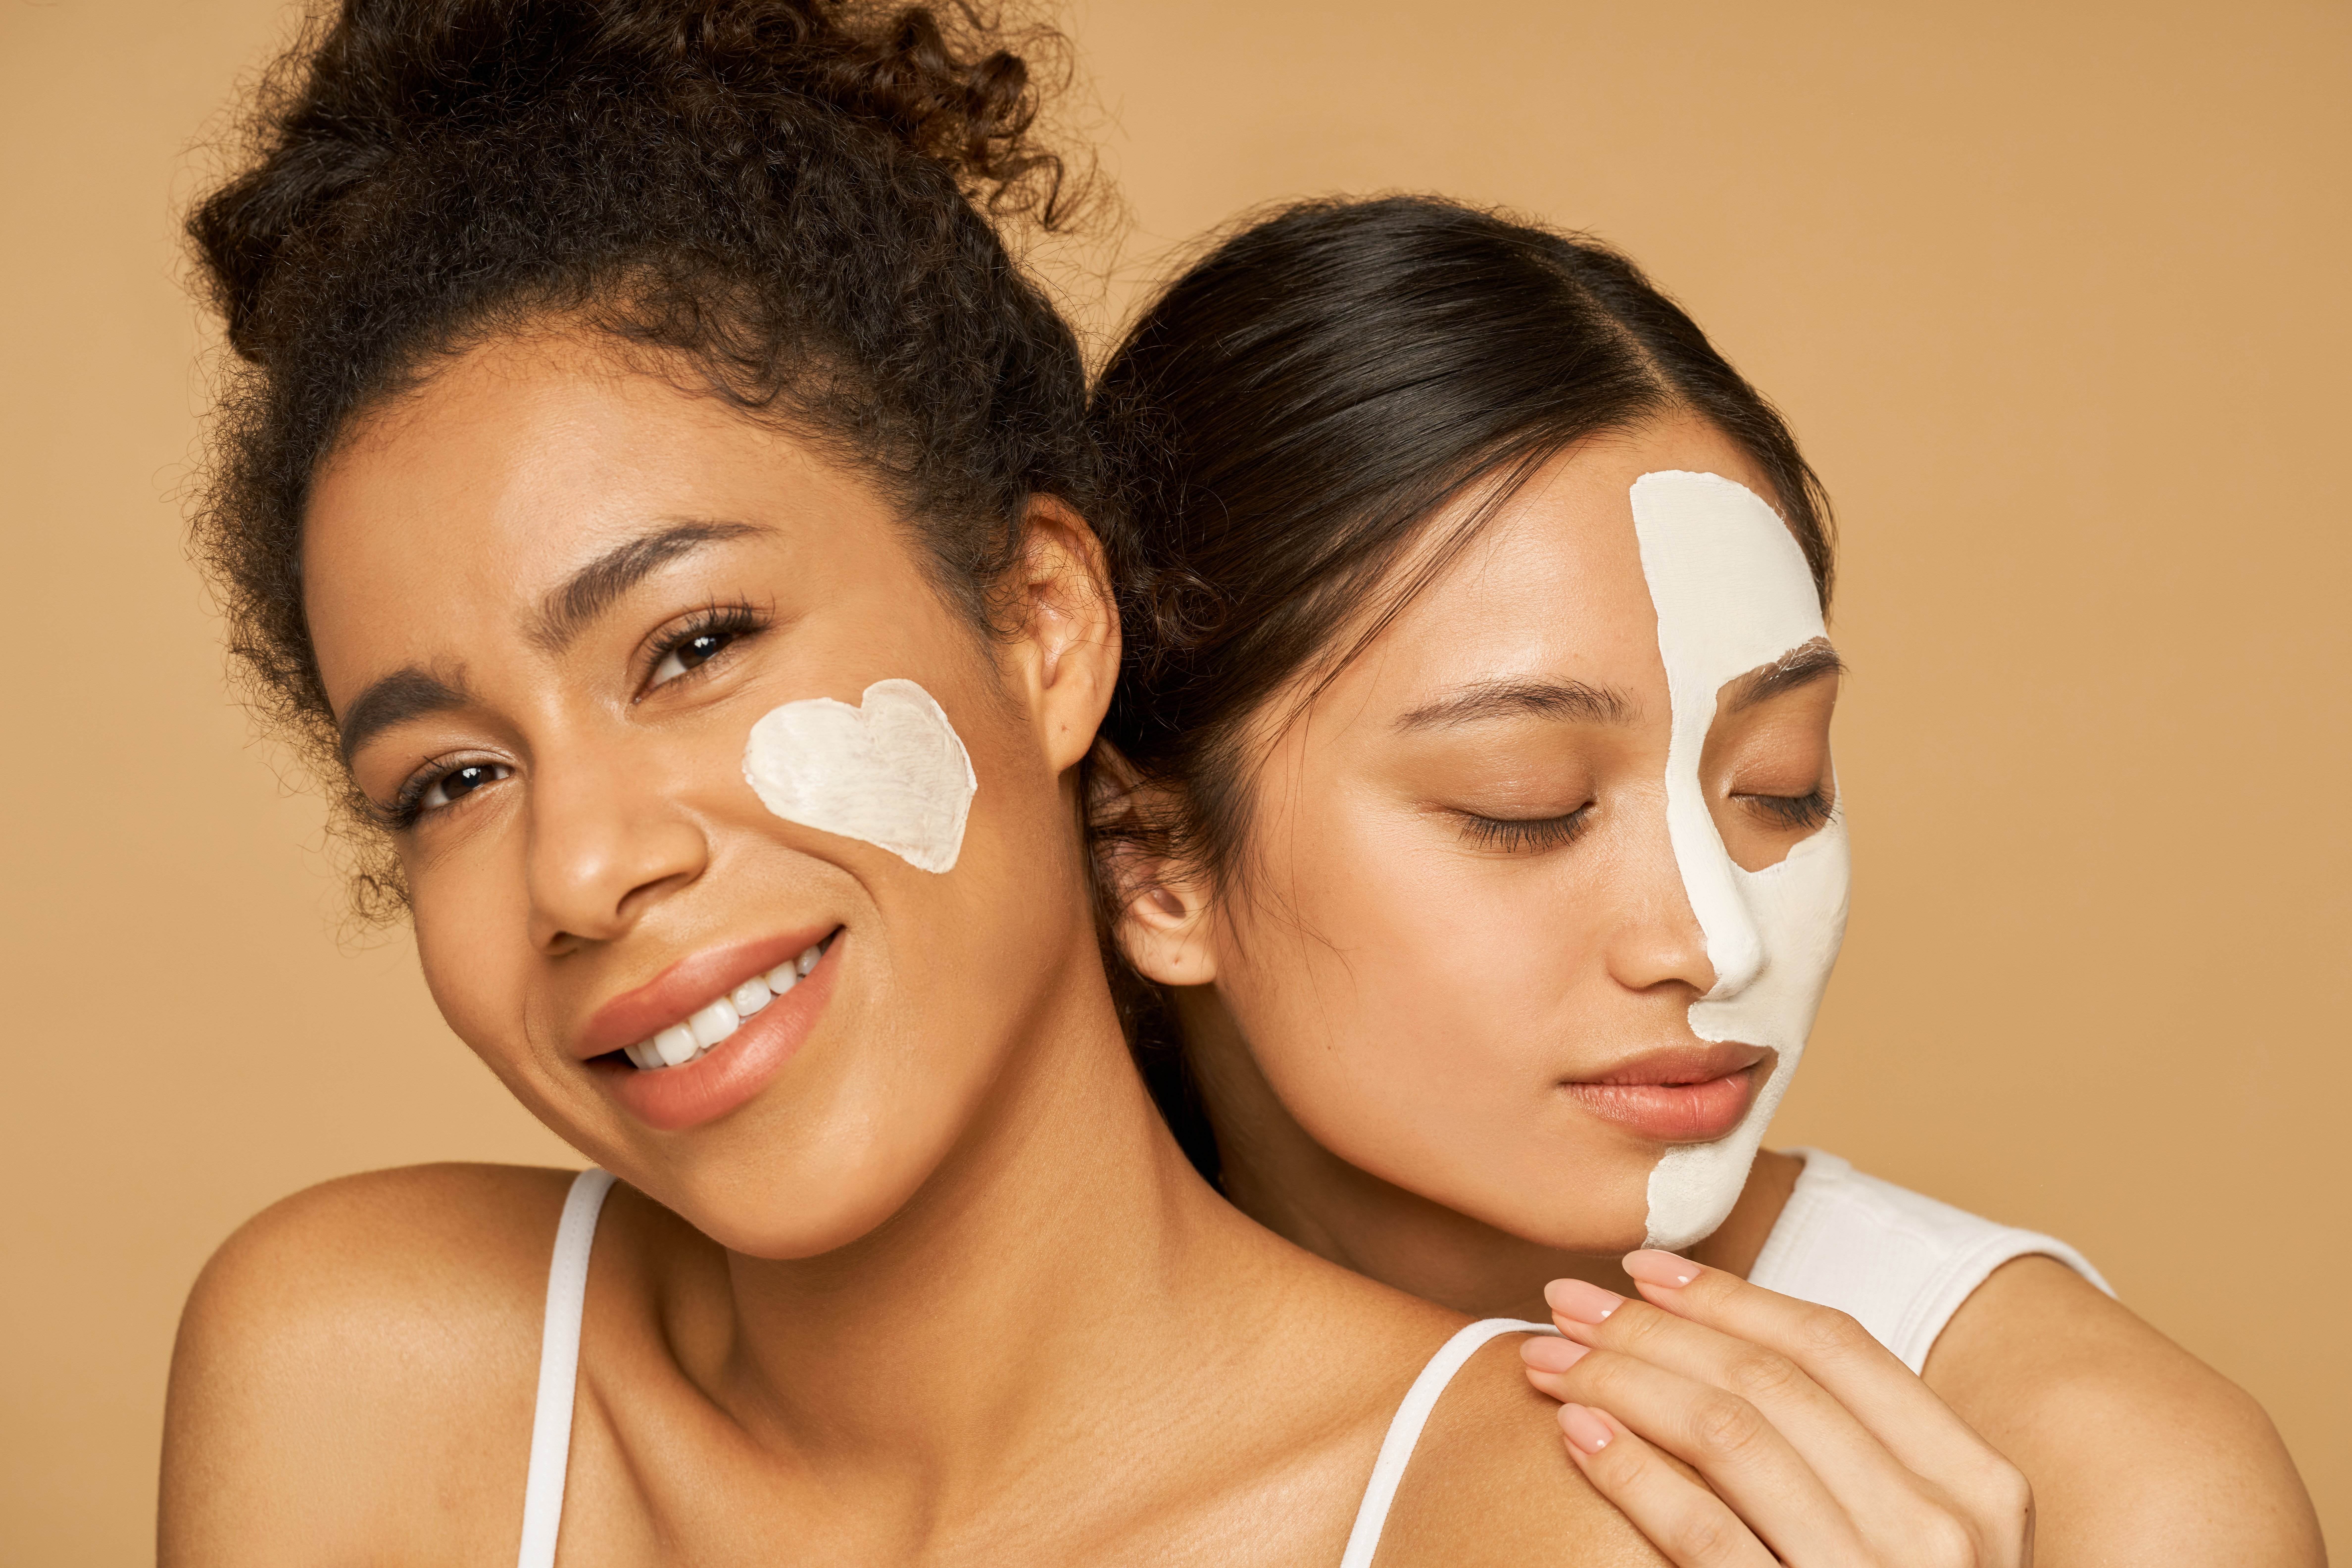 Women with lotion on their faces | Shutterstock